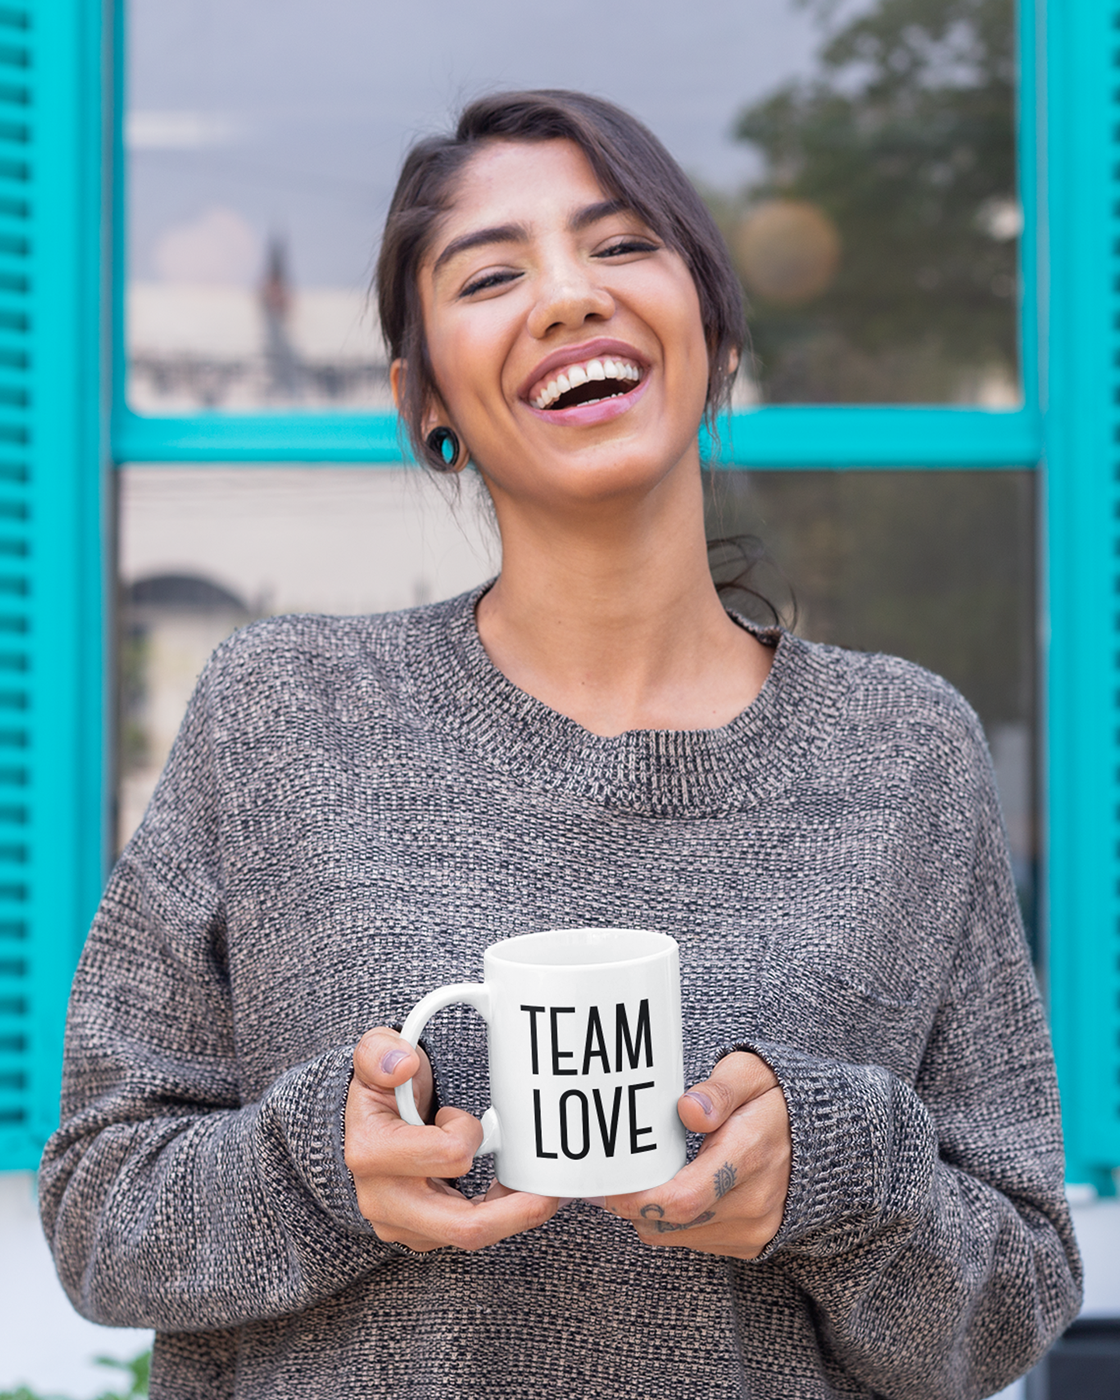 Team Love: 15oz. Coffee Mug - Love Tee